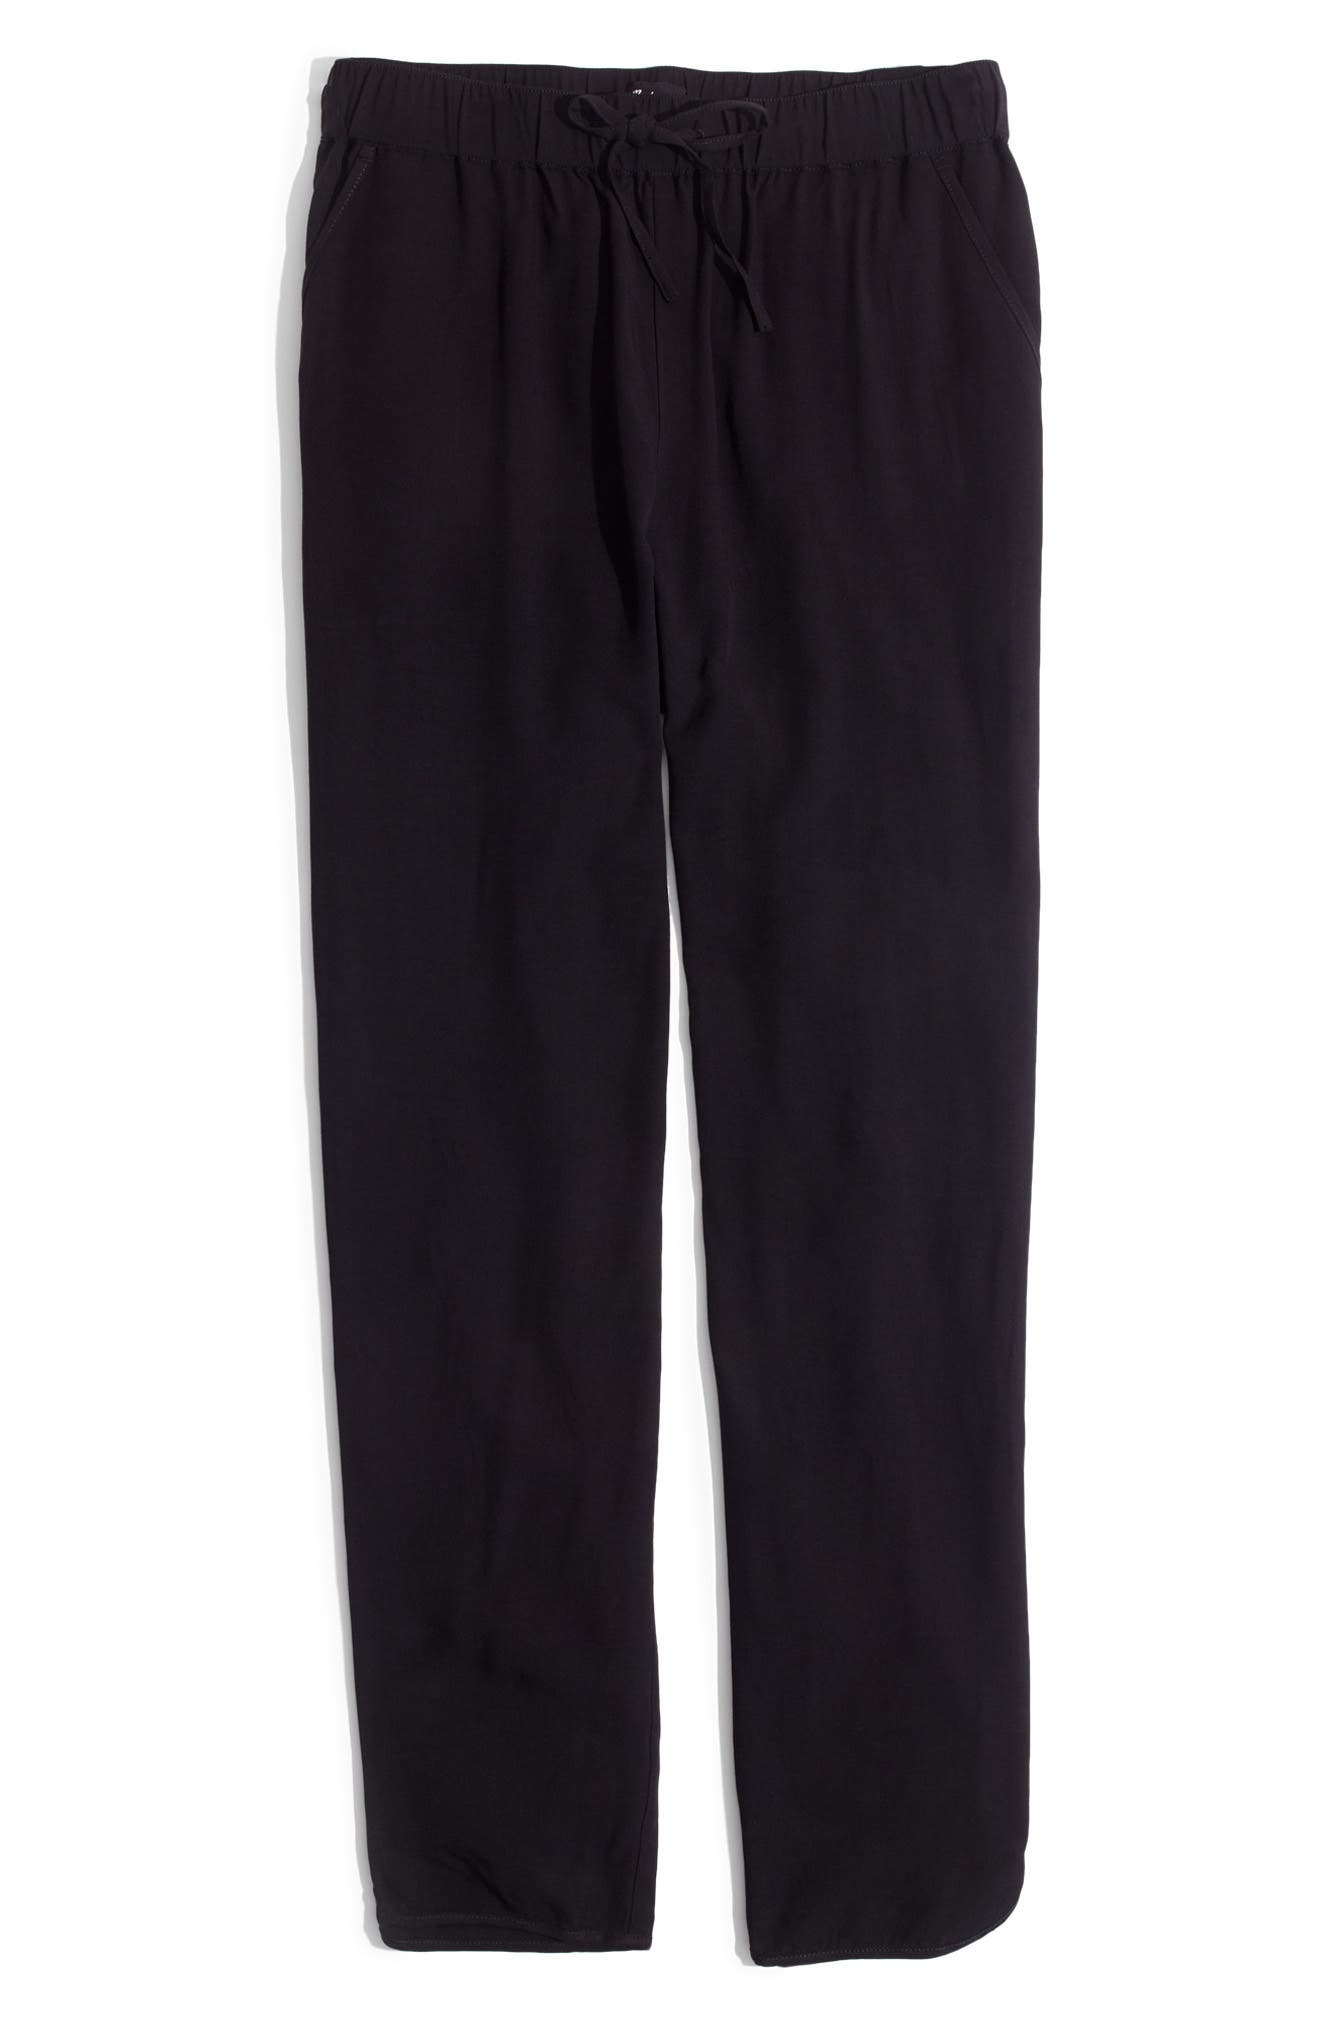 MADEWELL,                             Track Trousers,                             Alternate thumbnail 5, color,                             TRUE BLACK